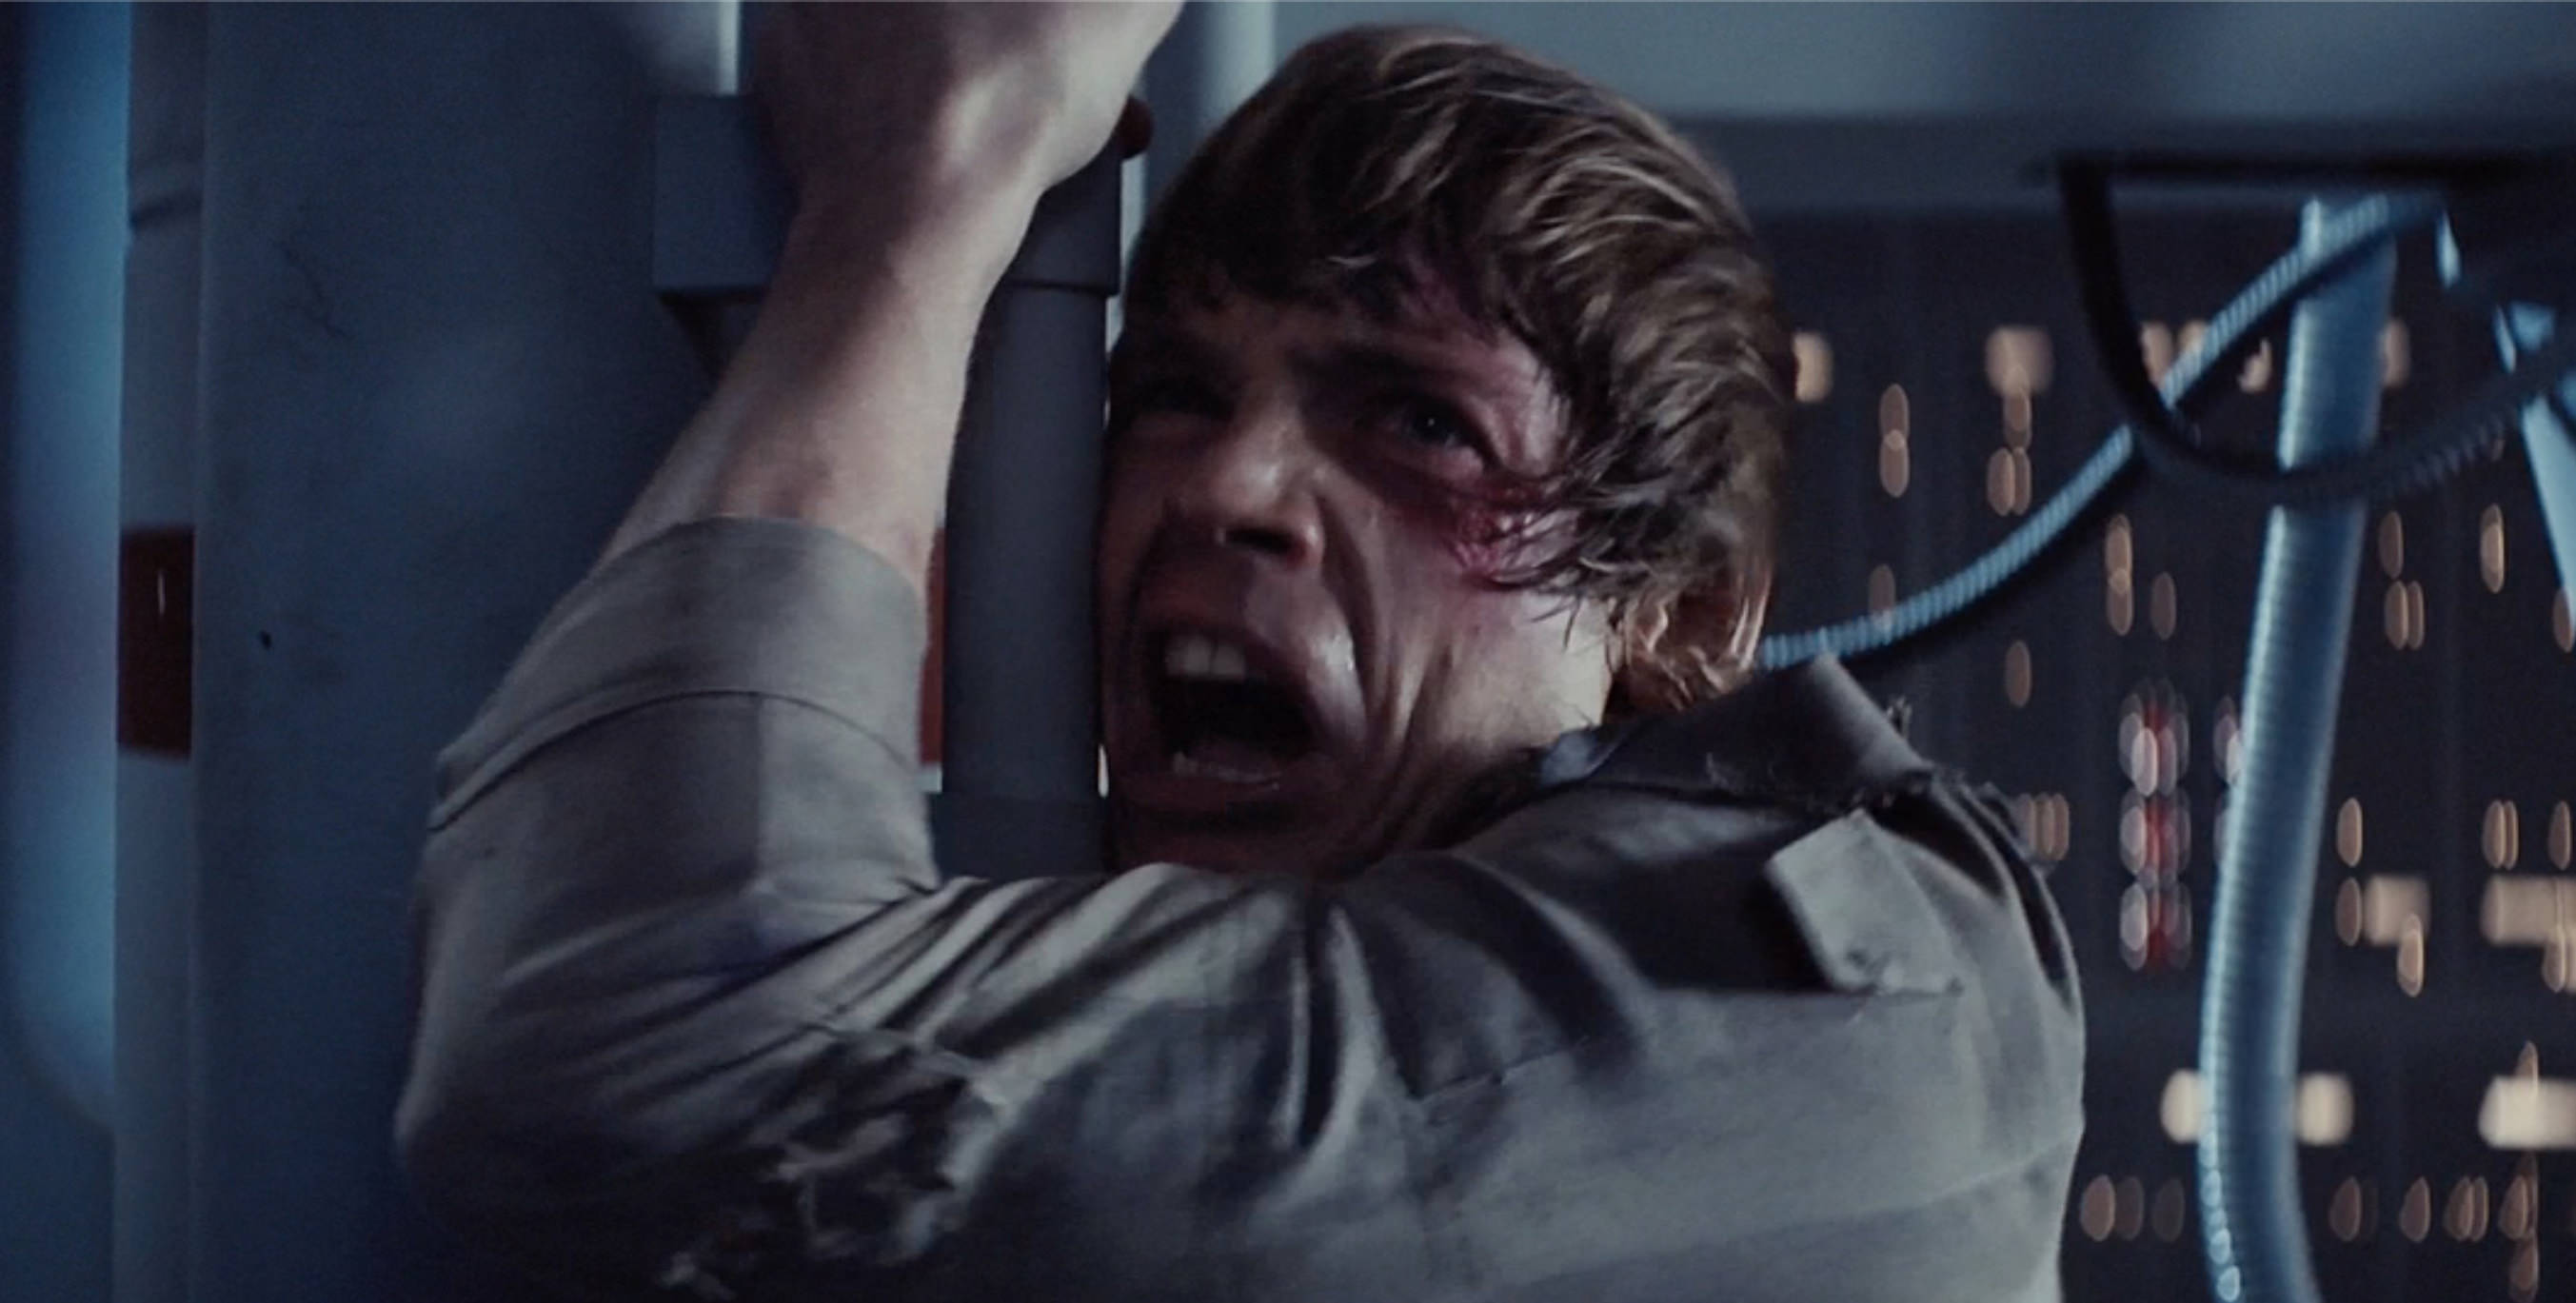 Luke screams NOOOOOO!